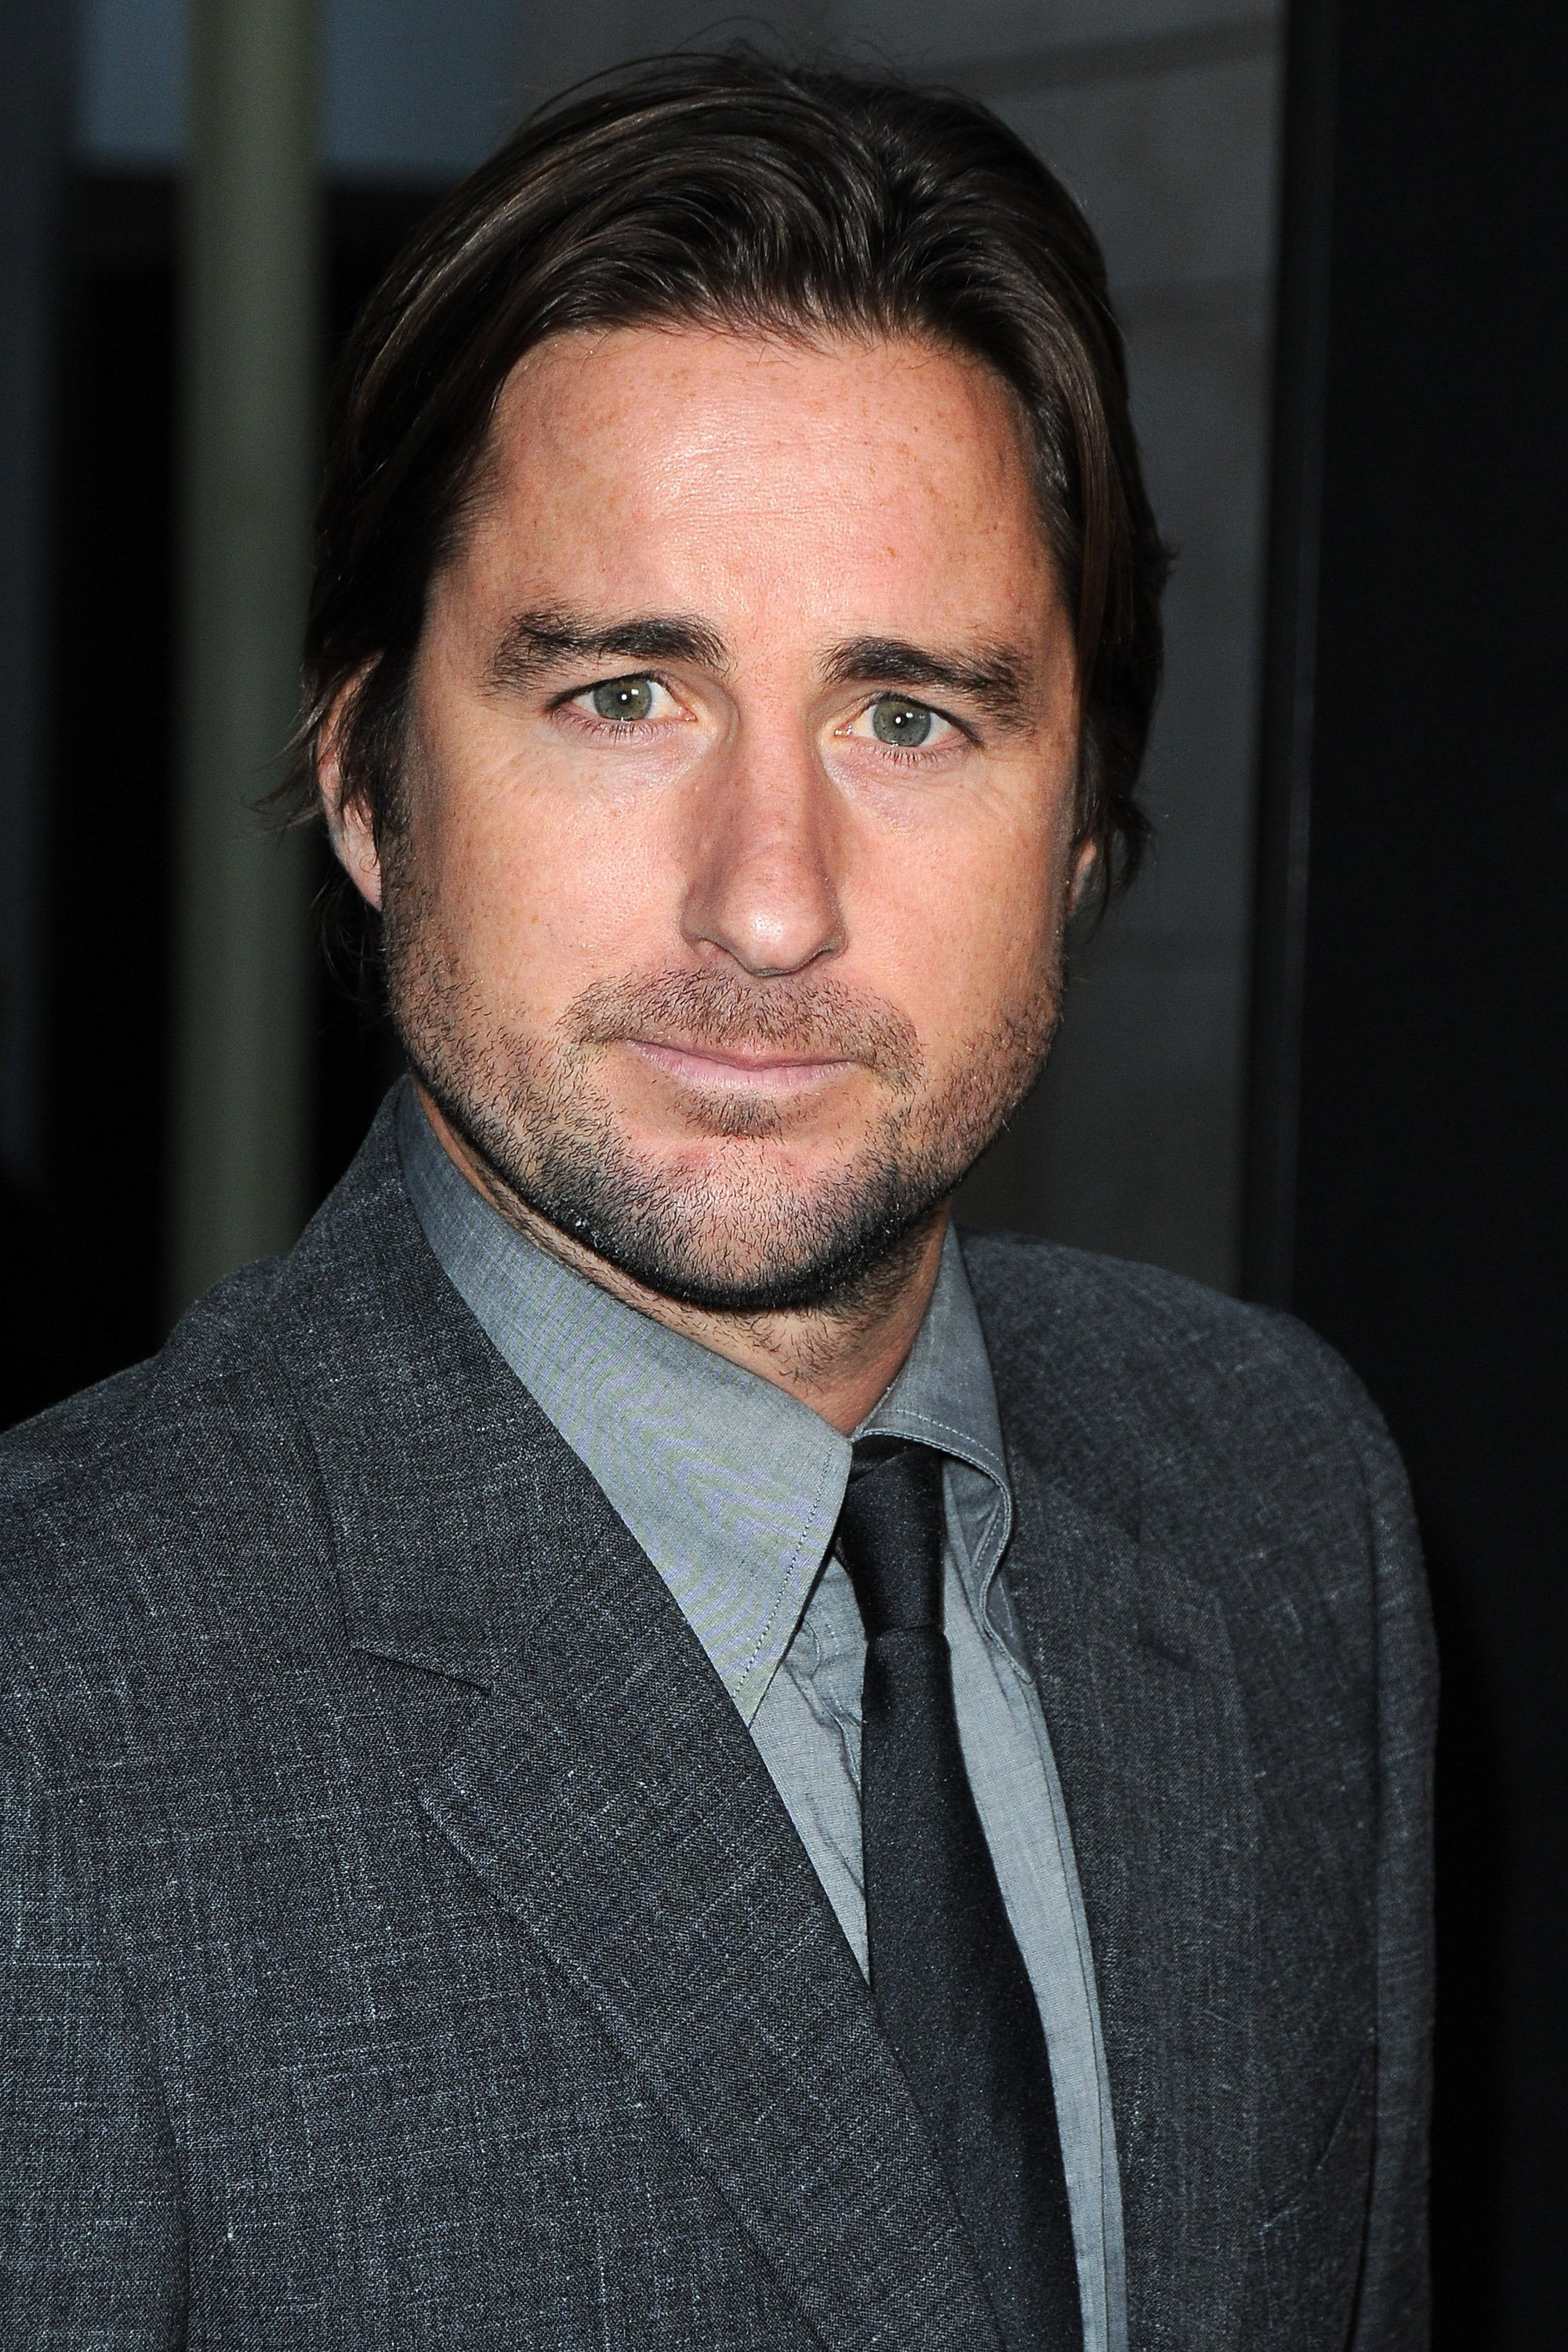 Luke Wilson Wallpapers High Quality Download 2000x3000